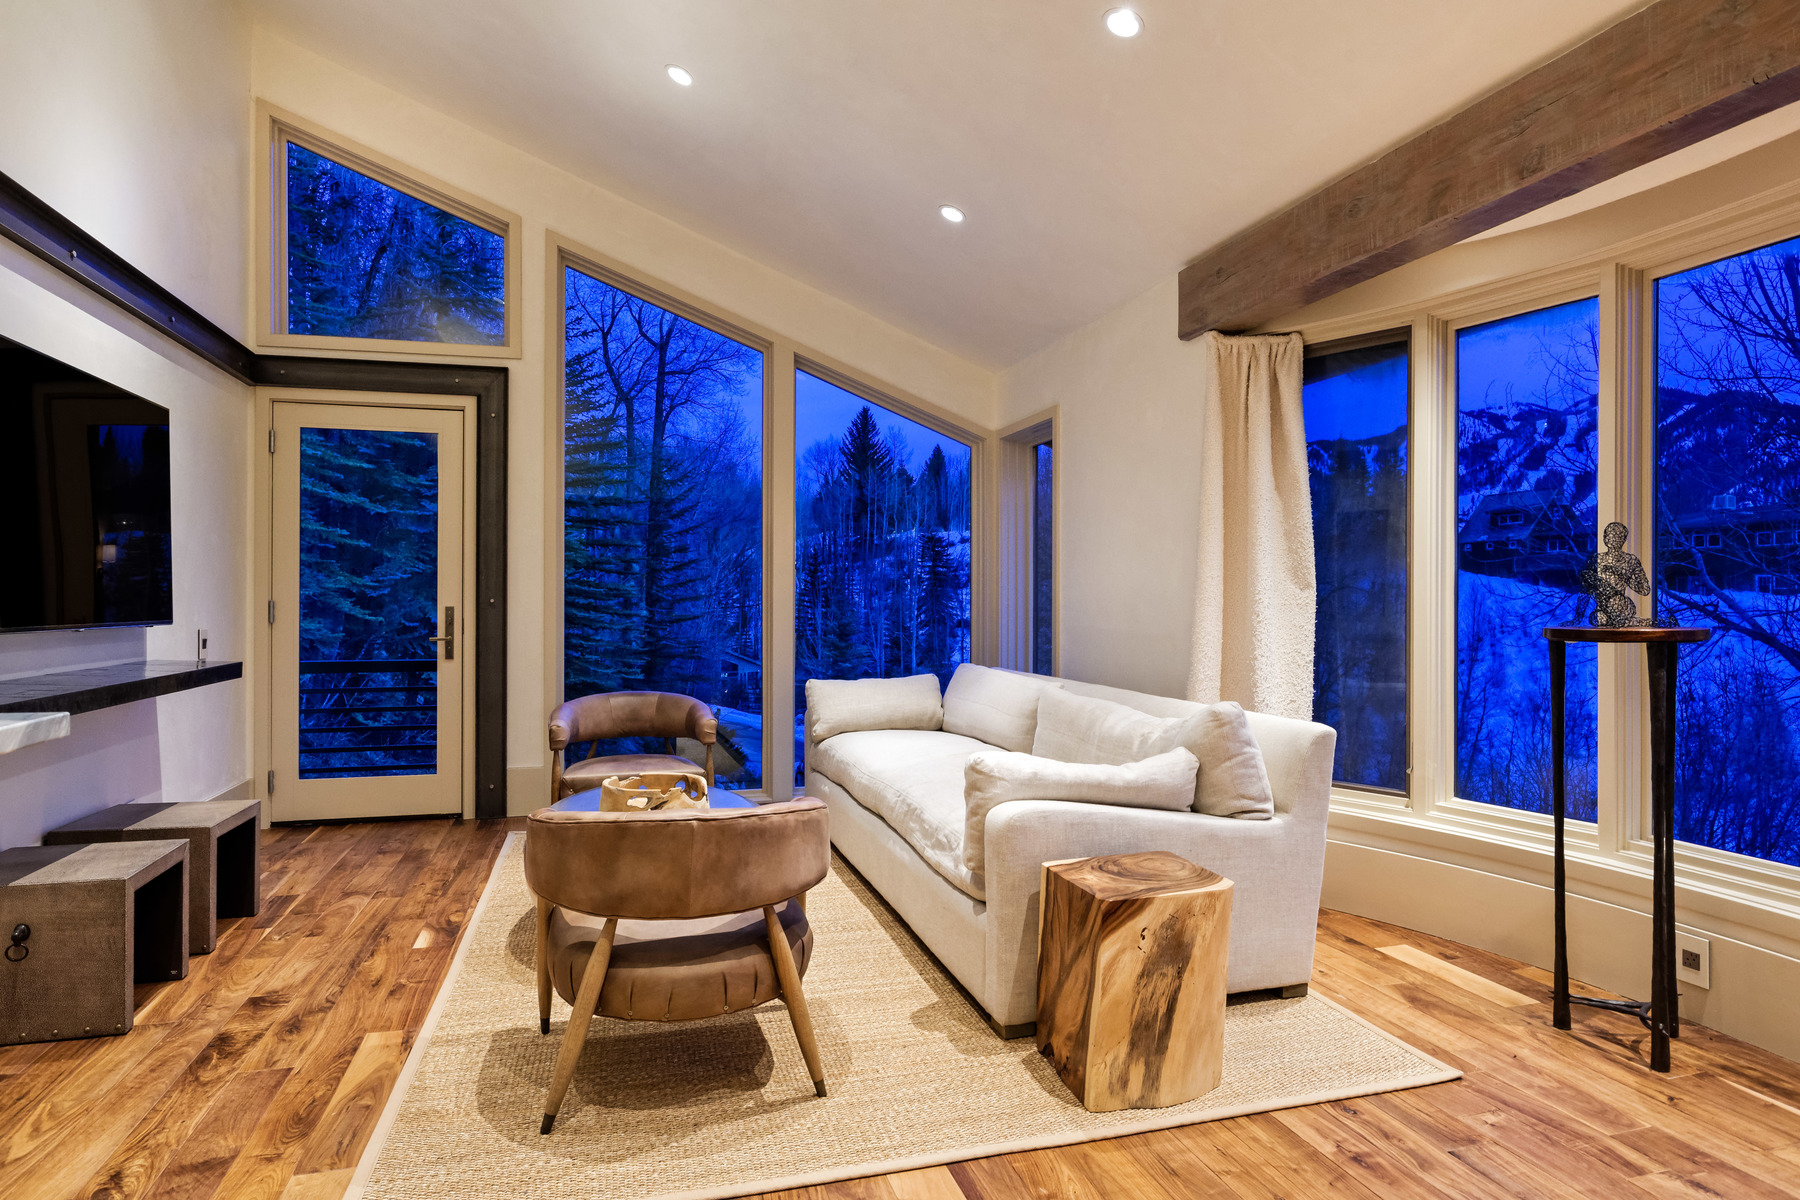 Additional photo for property listing at Red Mountain Retreat 153 Herron Hollow Road Aspen, Colorado 81611 United States